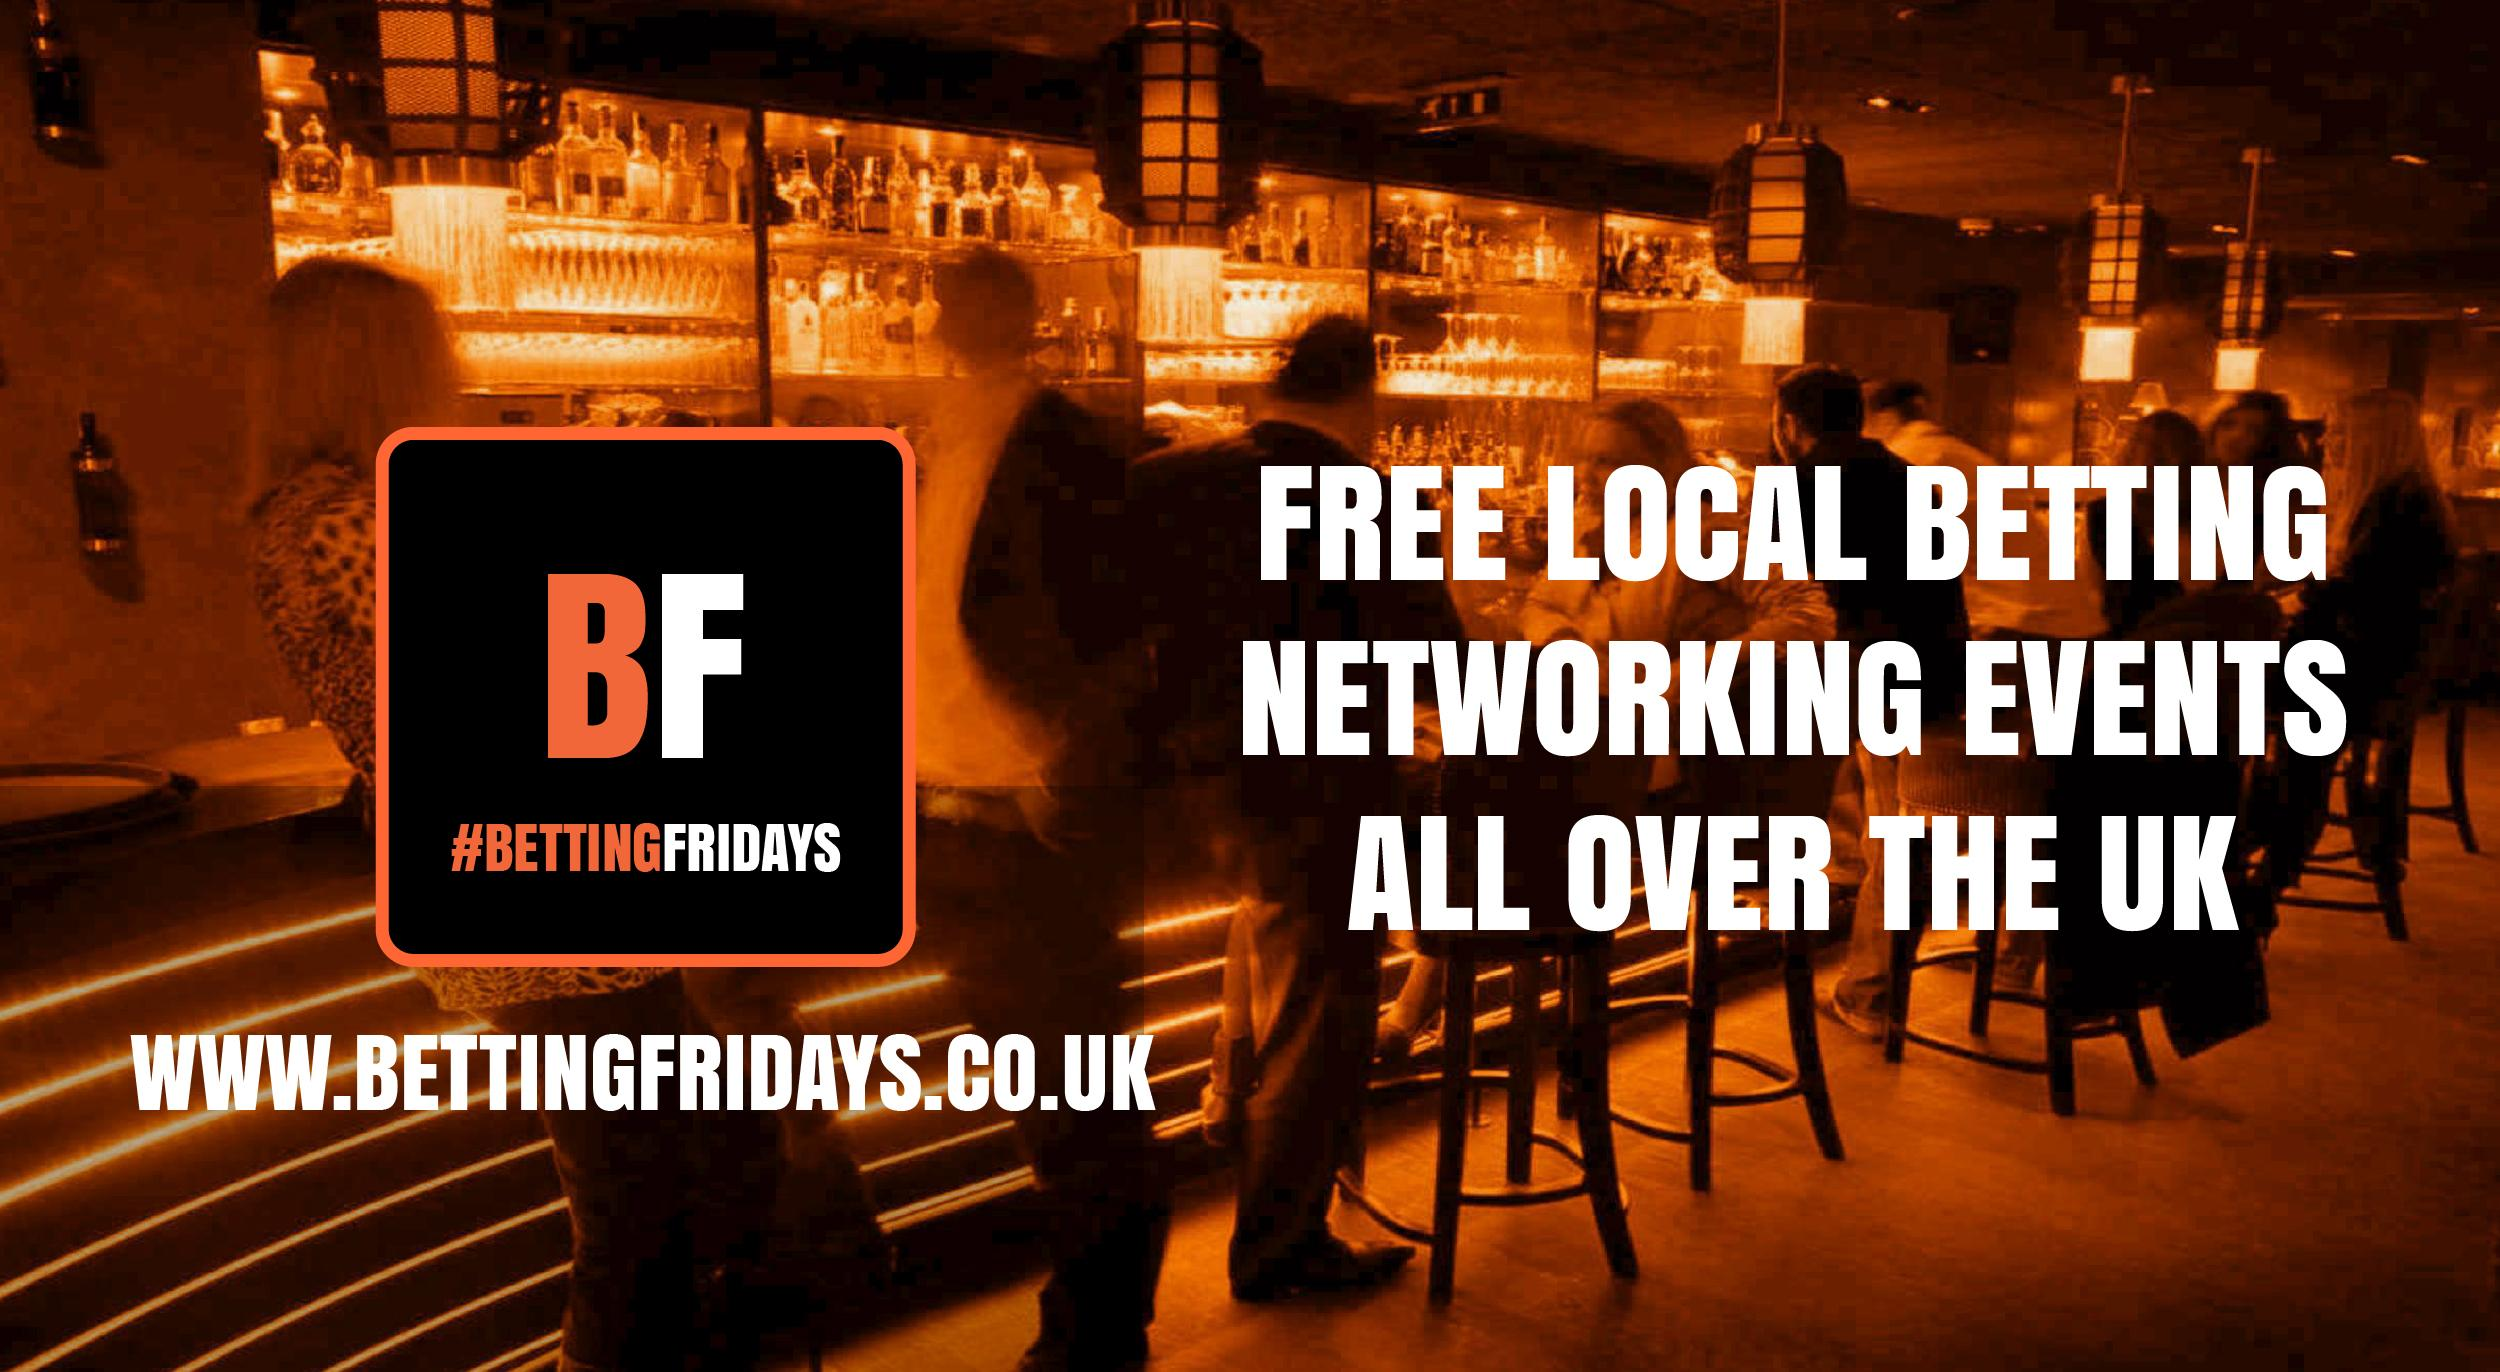 Betting Fridays! Free betting networking event in Bradford